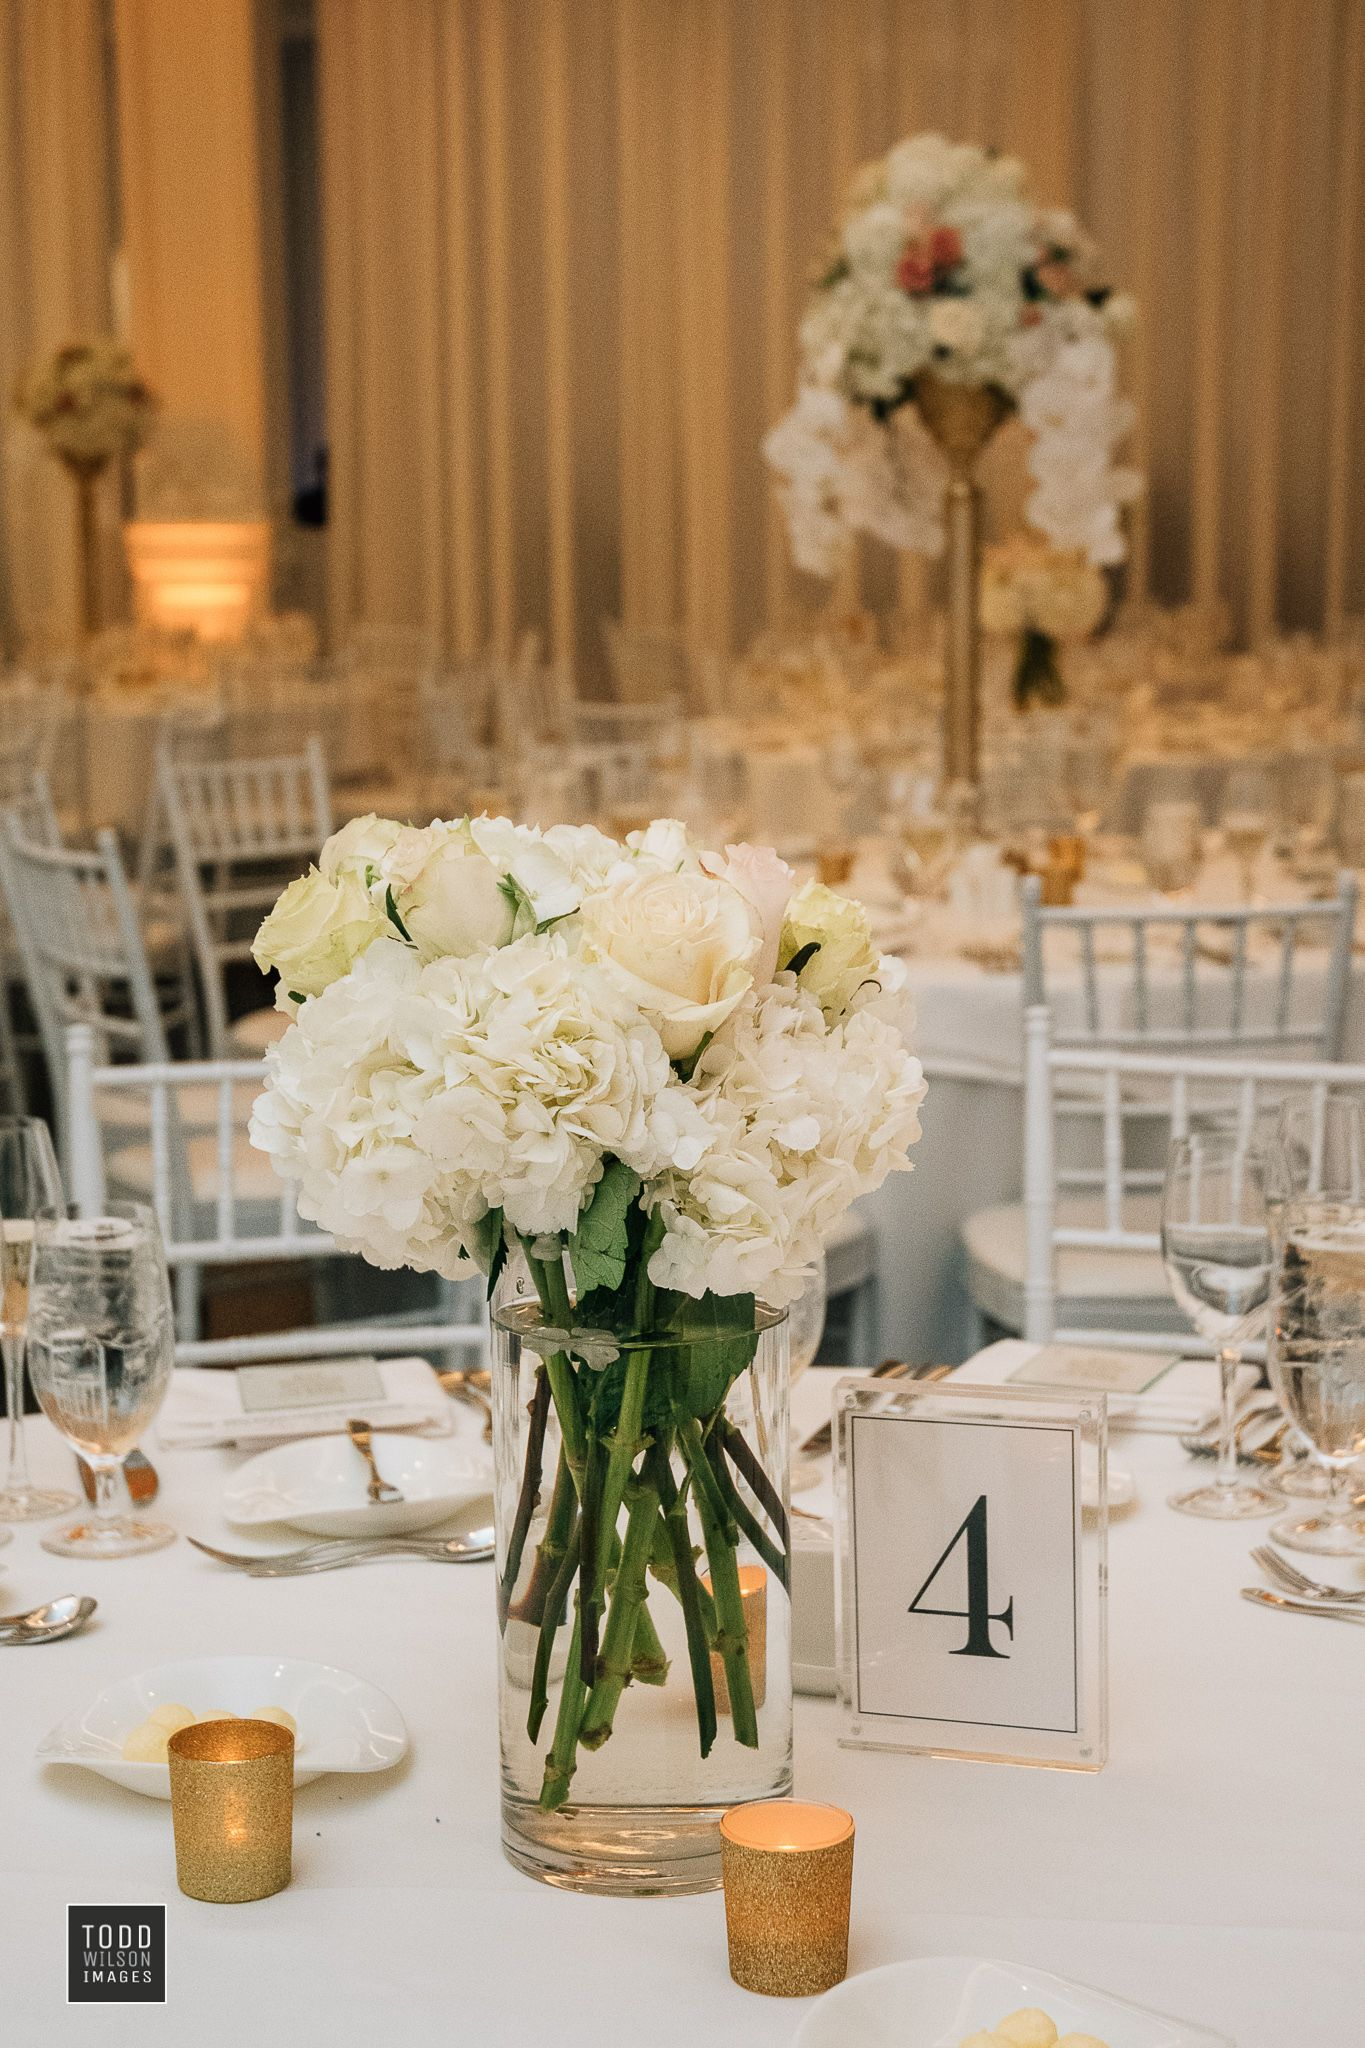 Todd Wilson Table decorations, Decor, Table